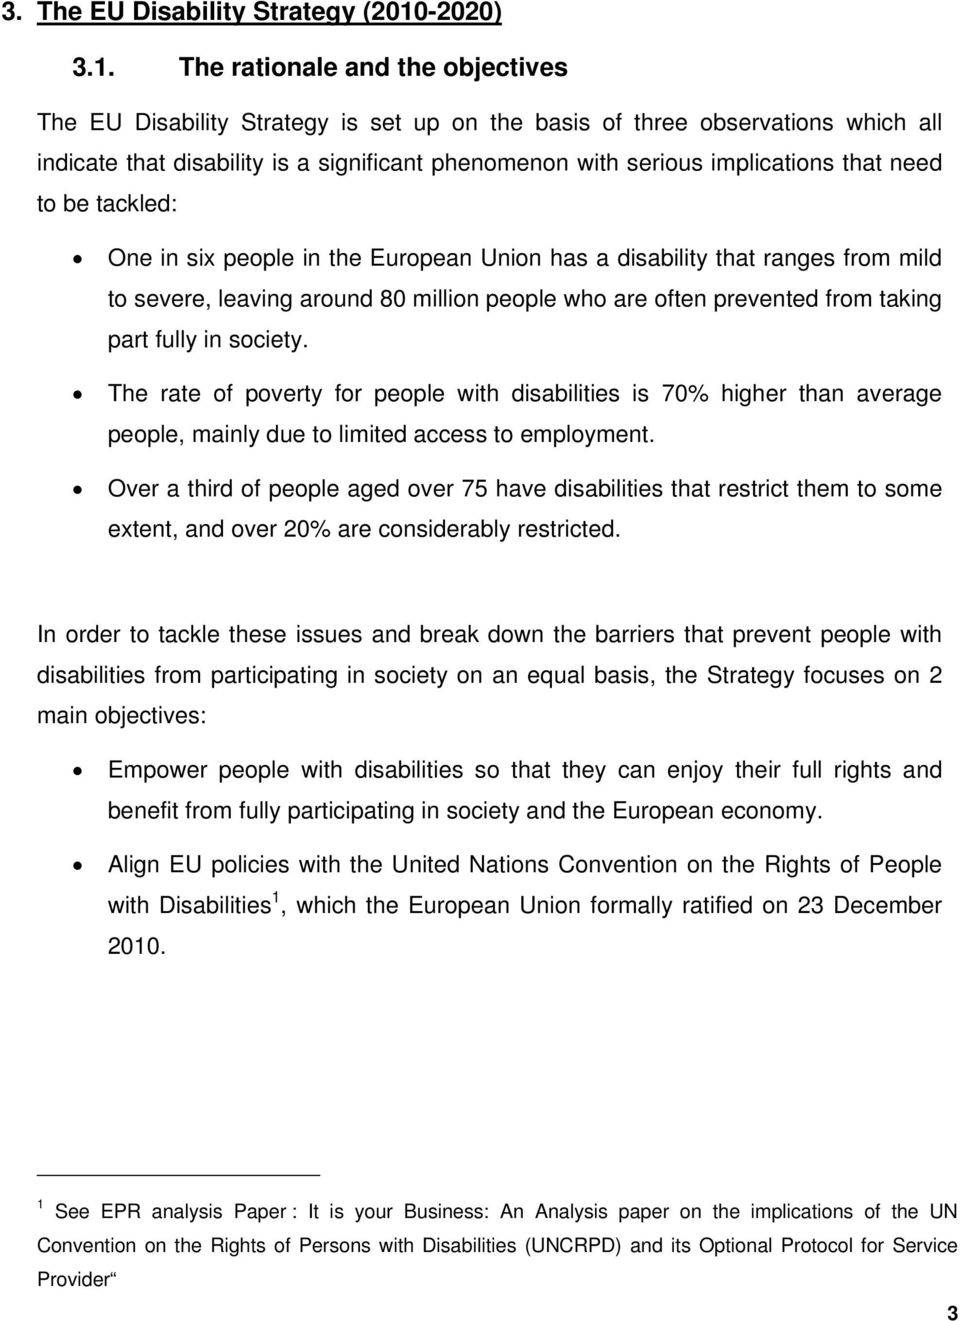 The rationale and the objectives The EU Disability Strategy is set up on the basis of three observations which all indicate that disability is a significant phenomenon with serious implications that